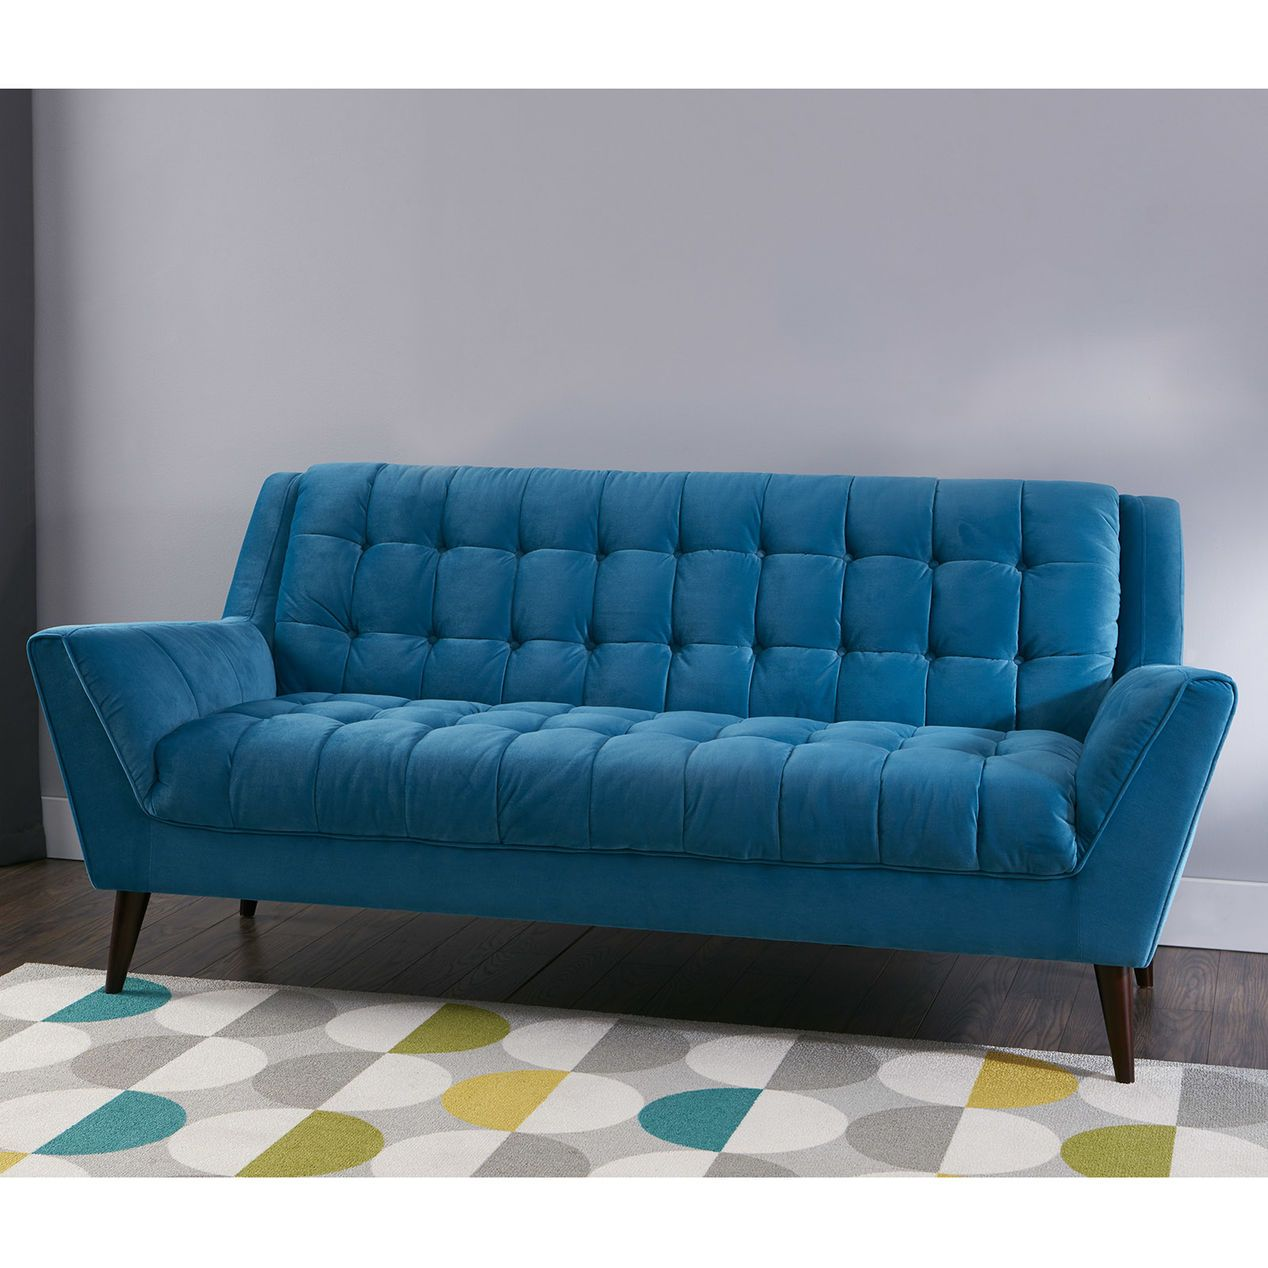 Nice Retro Couch , Luxury Retro Couch 93 For Your Sofa Room Ideas With Retro  Couch